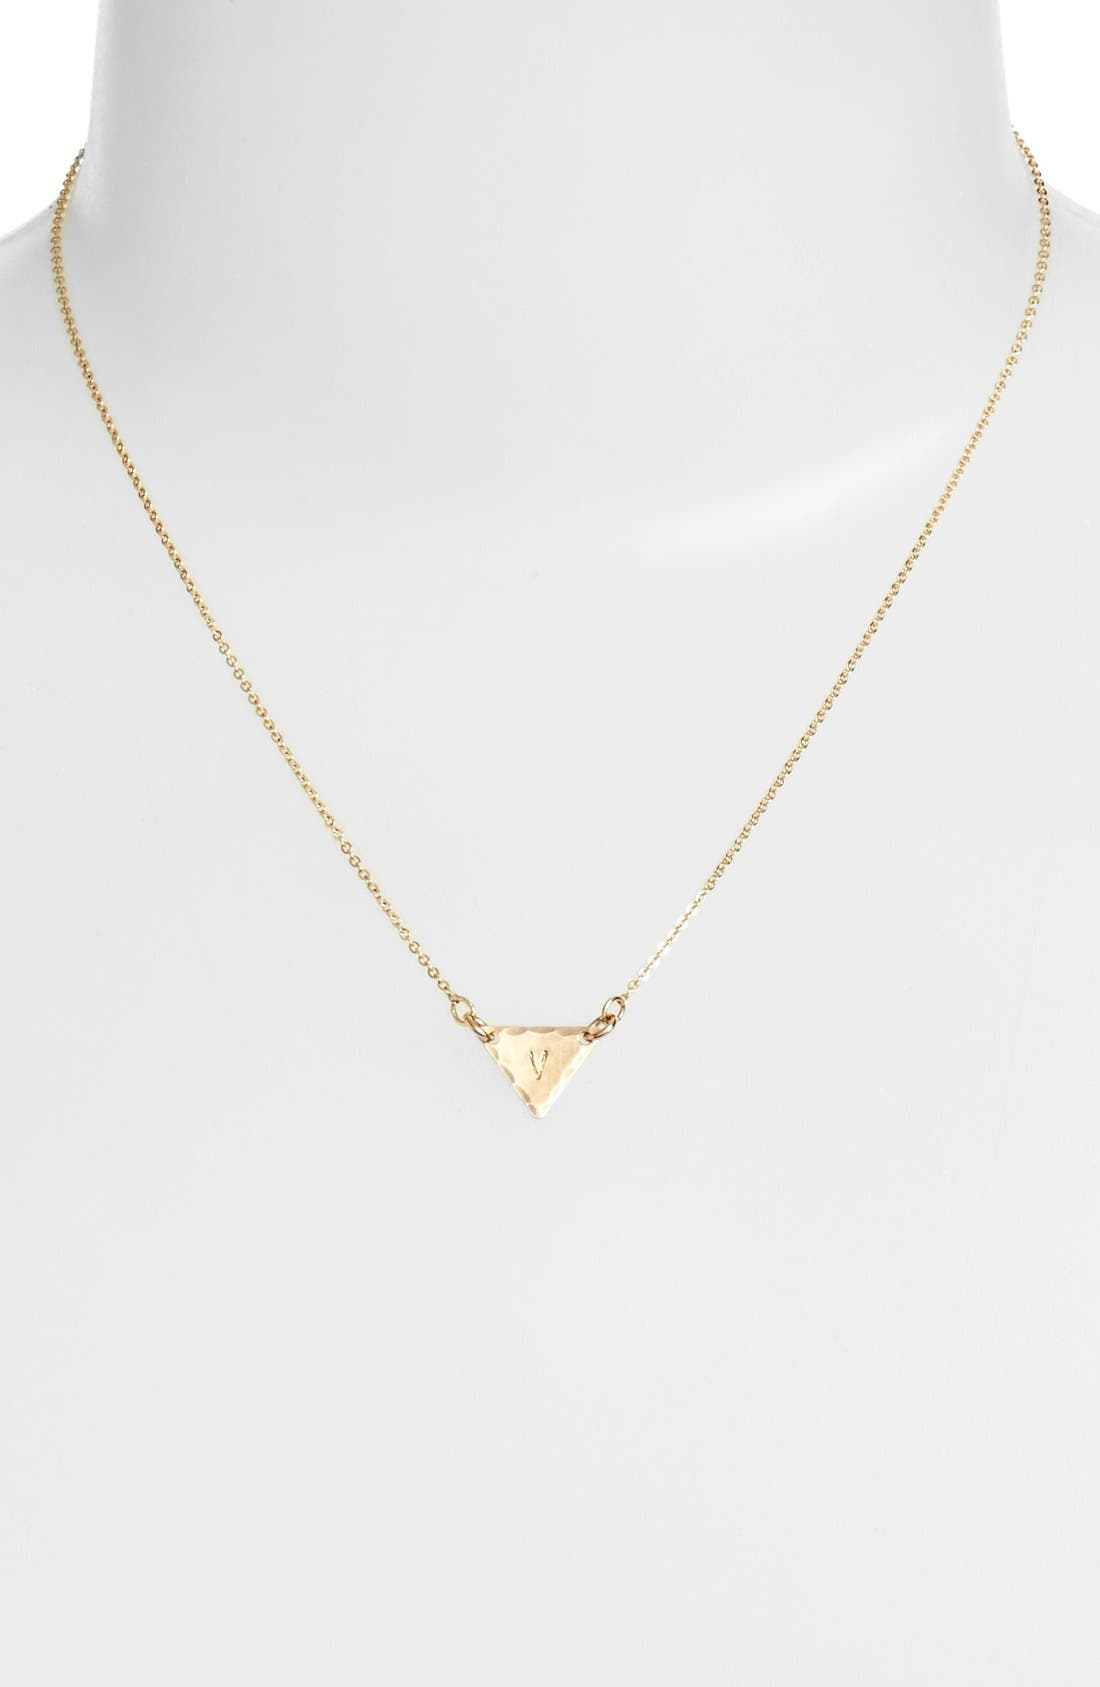 14k-Gold Fill Initial Triangle Necklace,                             Alternate thumbnail 48, color,